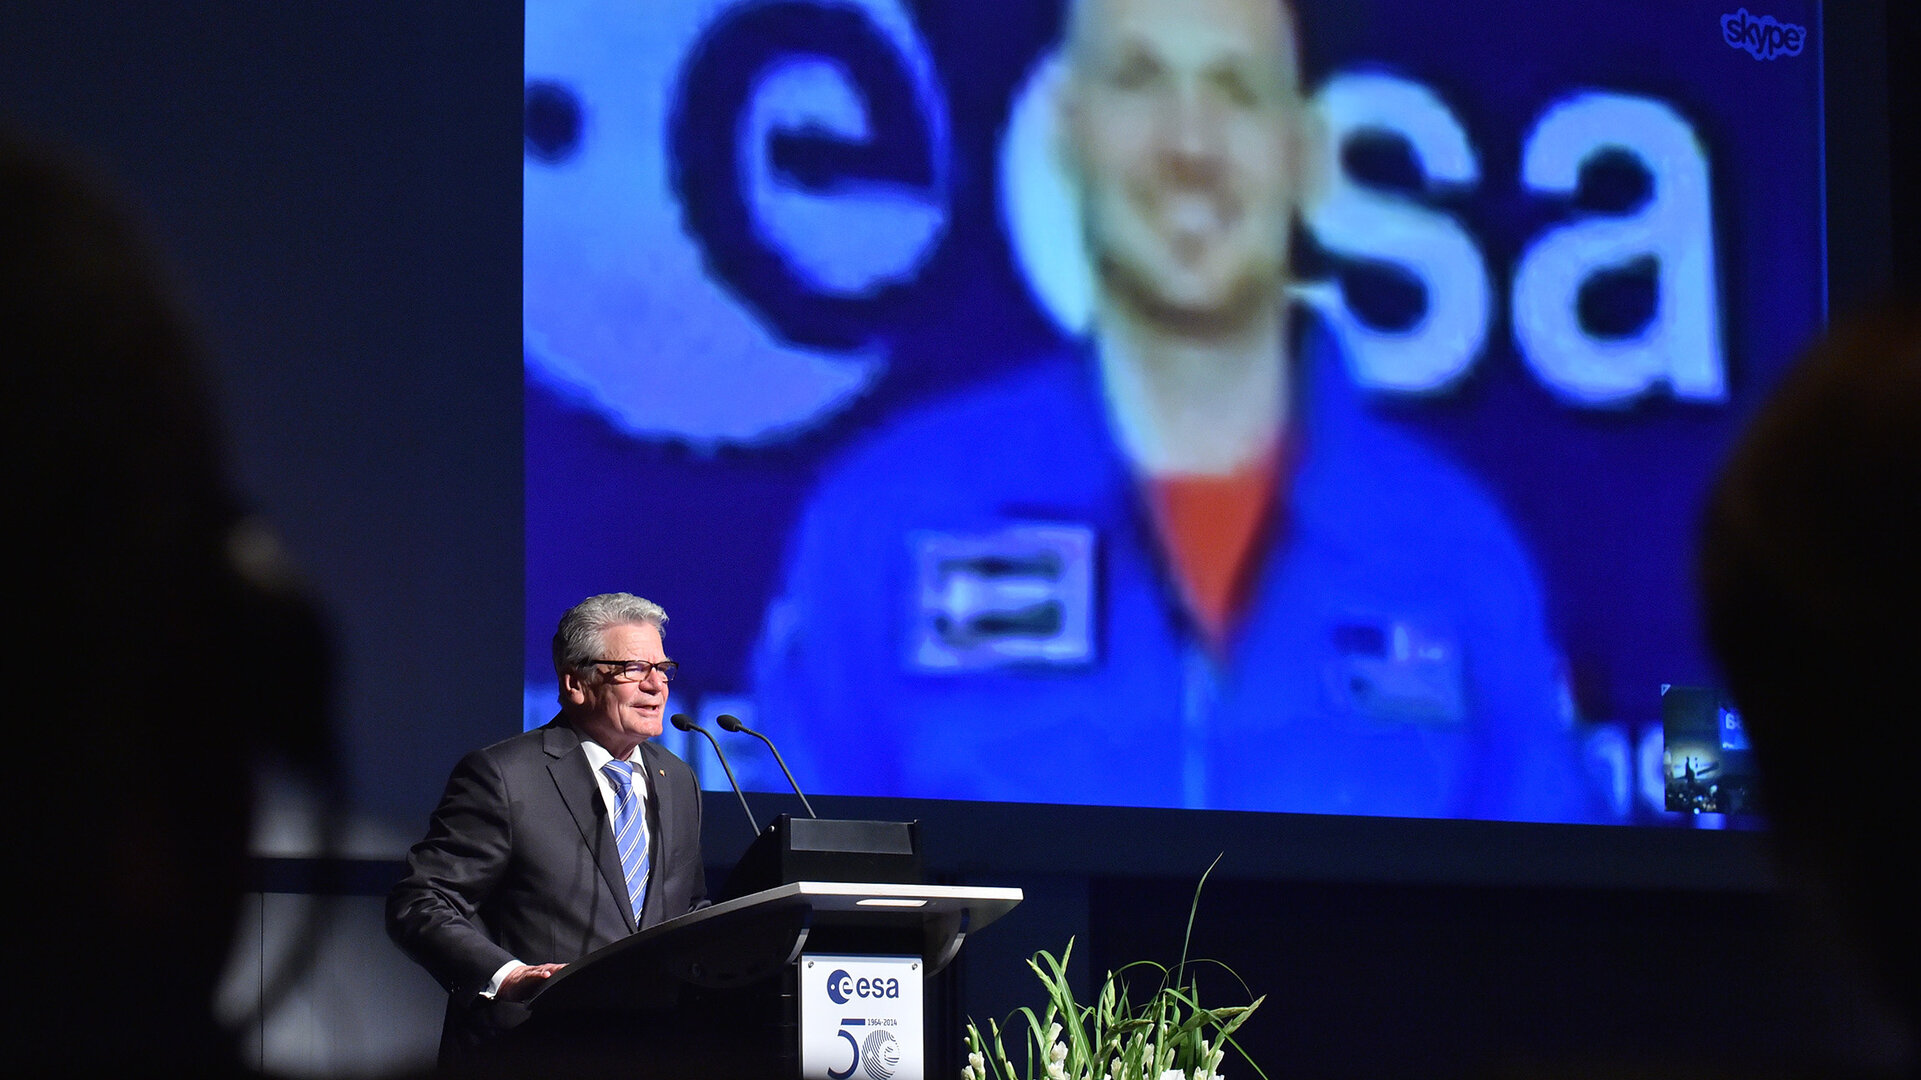 German President Gauck visits ESA in Darmstadt